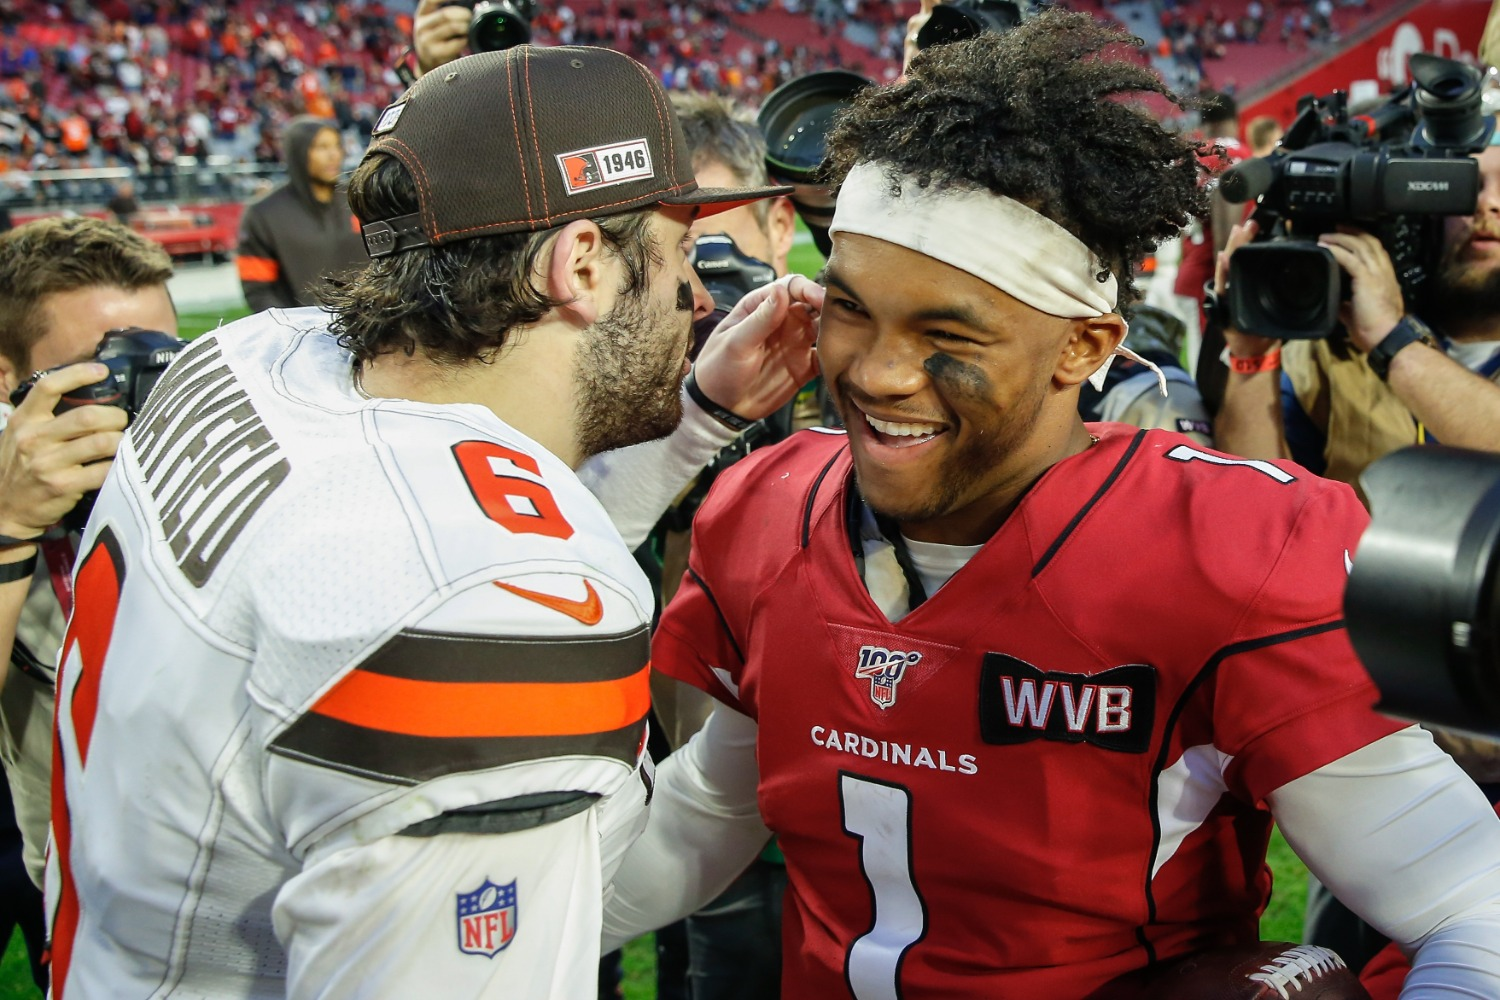 The Arizona Cardinals could guarantee Kyler Murray becomes a breakout star by trading for Browns tight end David Njoku and his $7.7 million salary over the next two years.